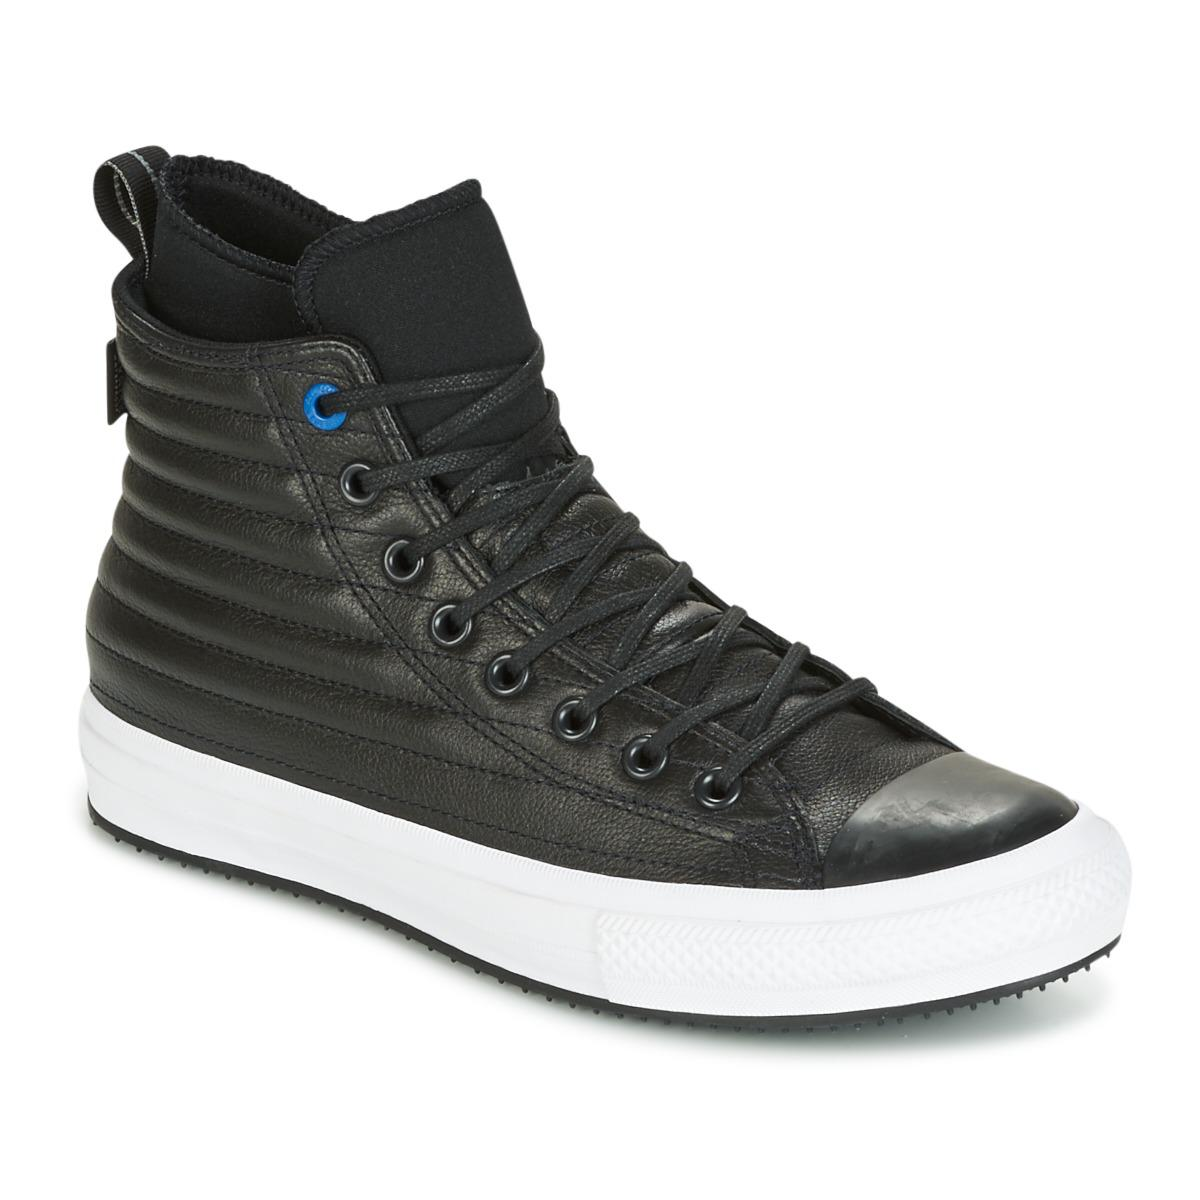 Converse Chuck Taylor Wp Boot Quilted Leather Hi Black/blue Jay